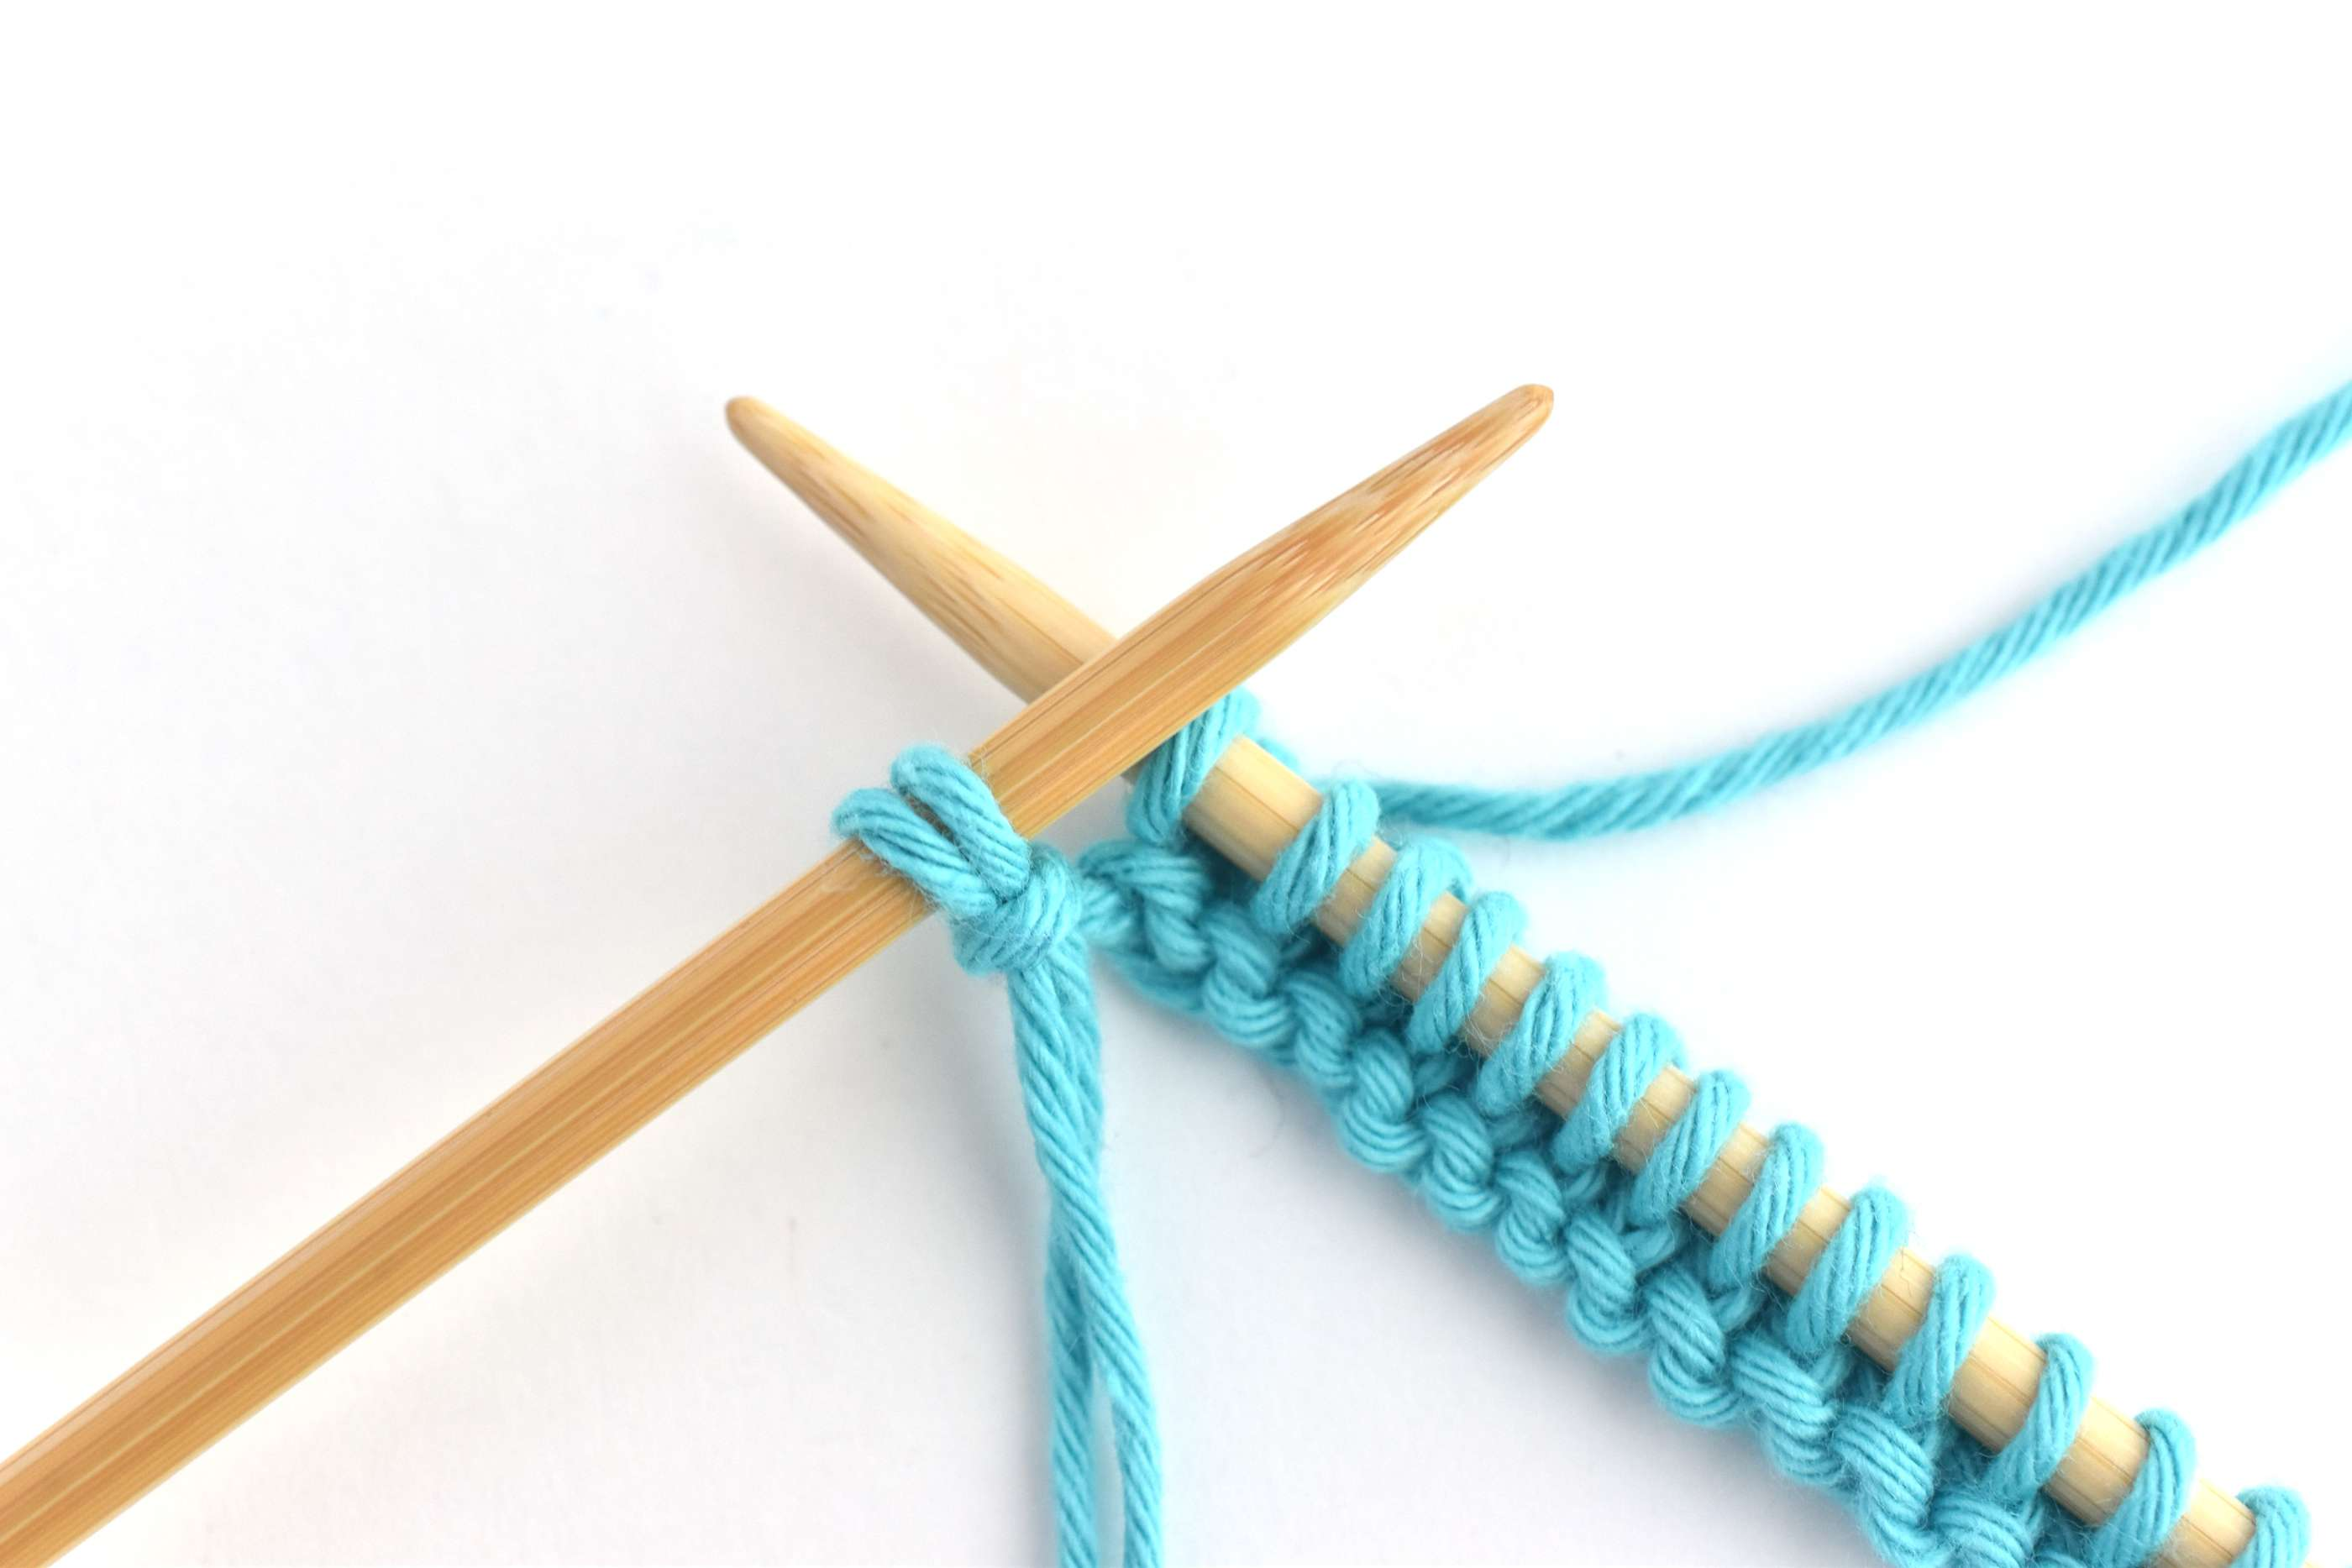 Knit the Row Without Knitting the Slip Stitch